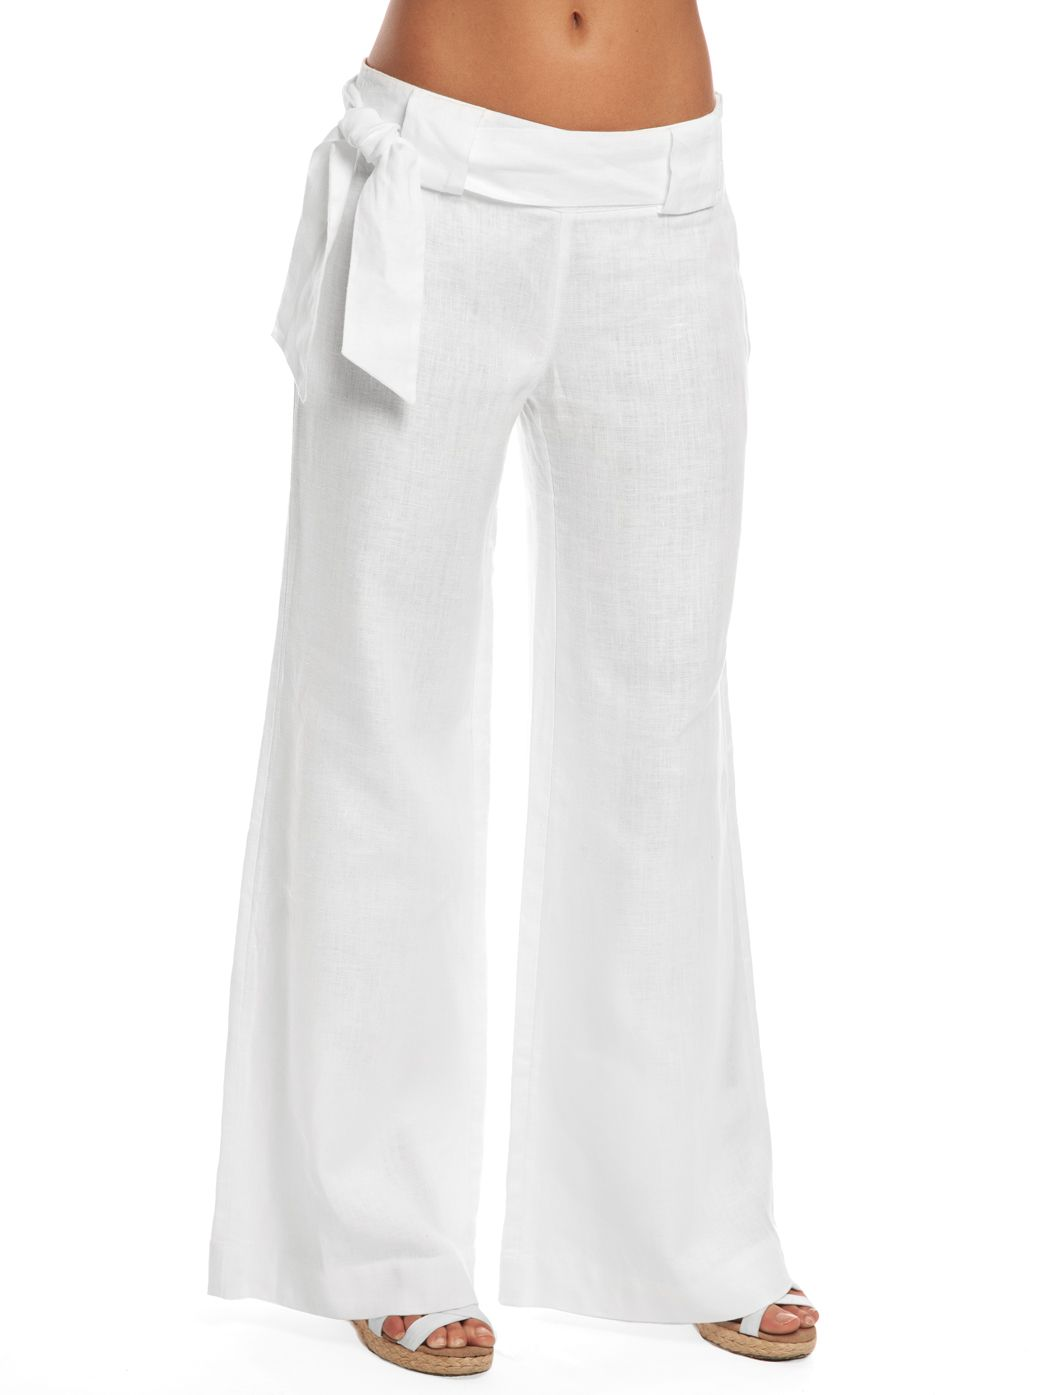 3ea5174c26 Our White Pirate Palazzo Pant emanate casual island elegance with soft linen  and a flattering wide leg! Wear these white linen pants on your next  getaway!